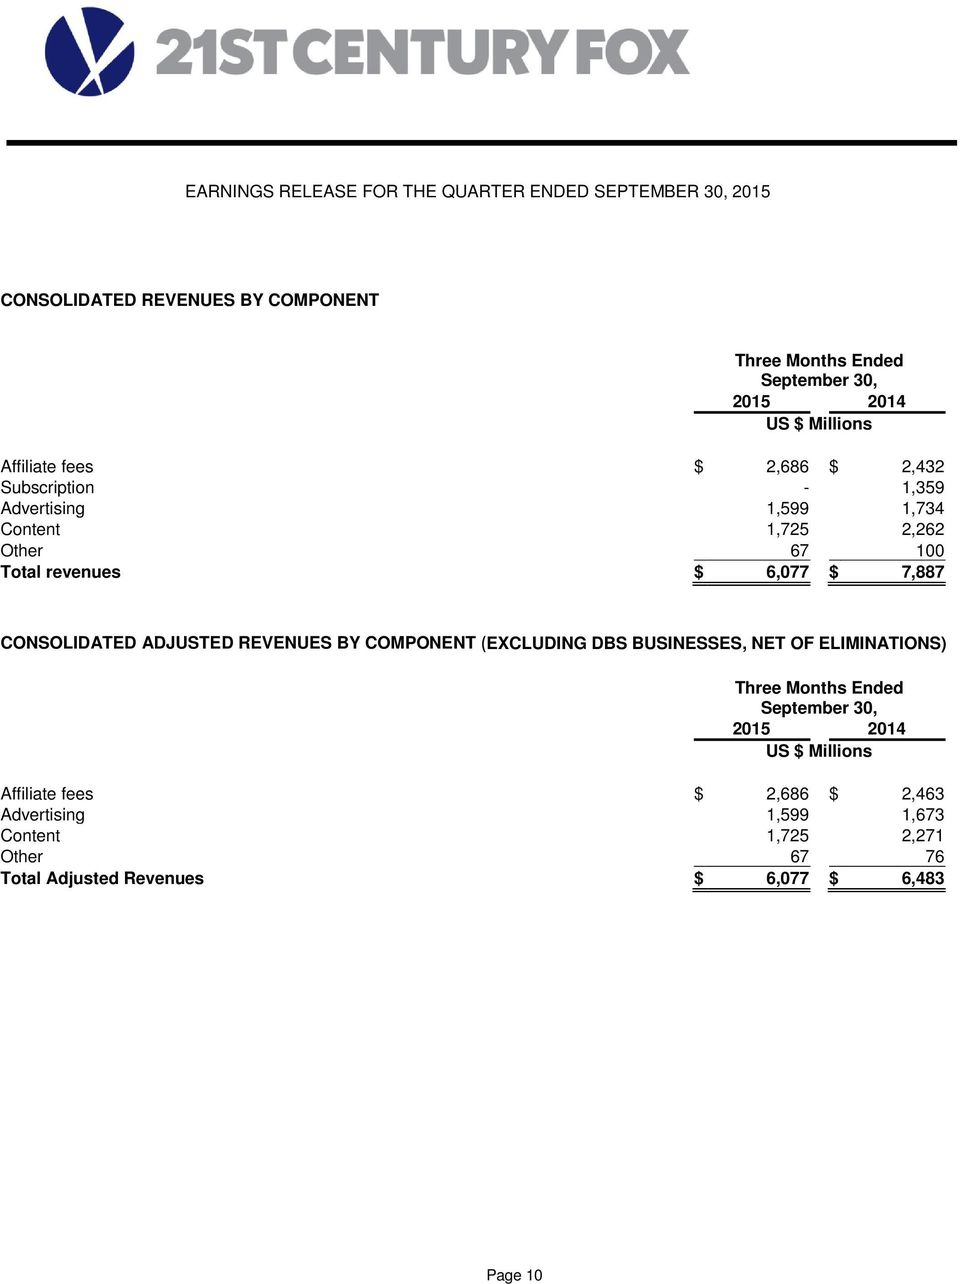 REVENUES BY COMPONENT (EXCLUDING DBS BUSINESSES, NET OF ELIMINATIONS) Affiliate fees $ 2,686 $ 2,463